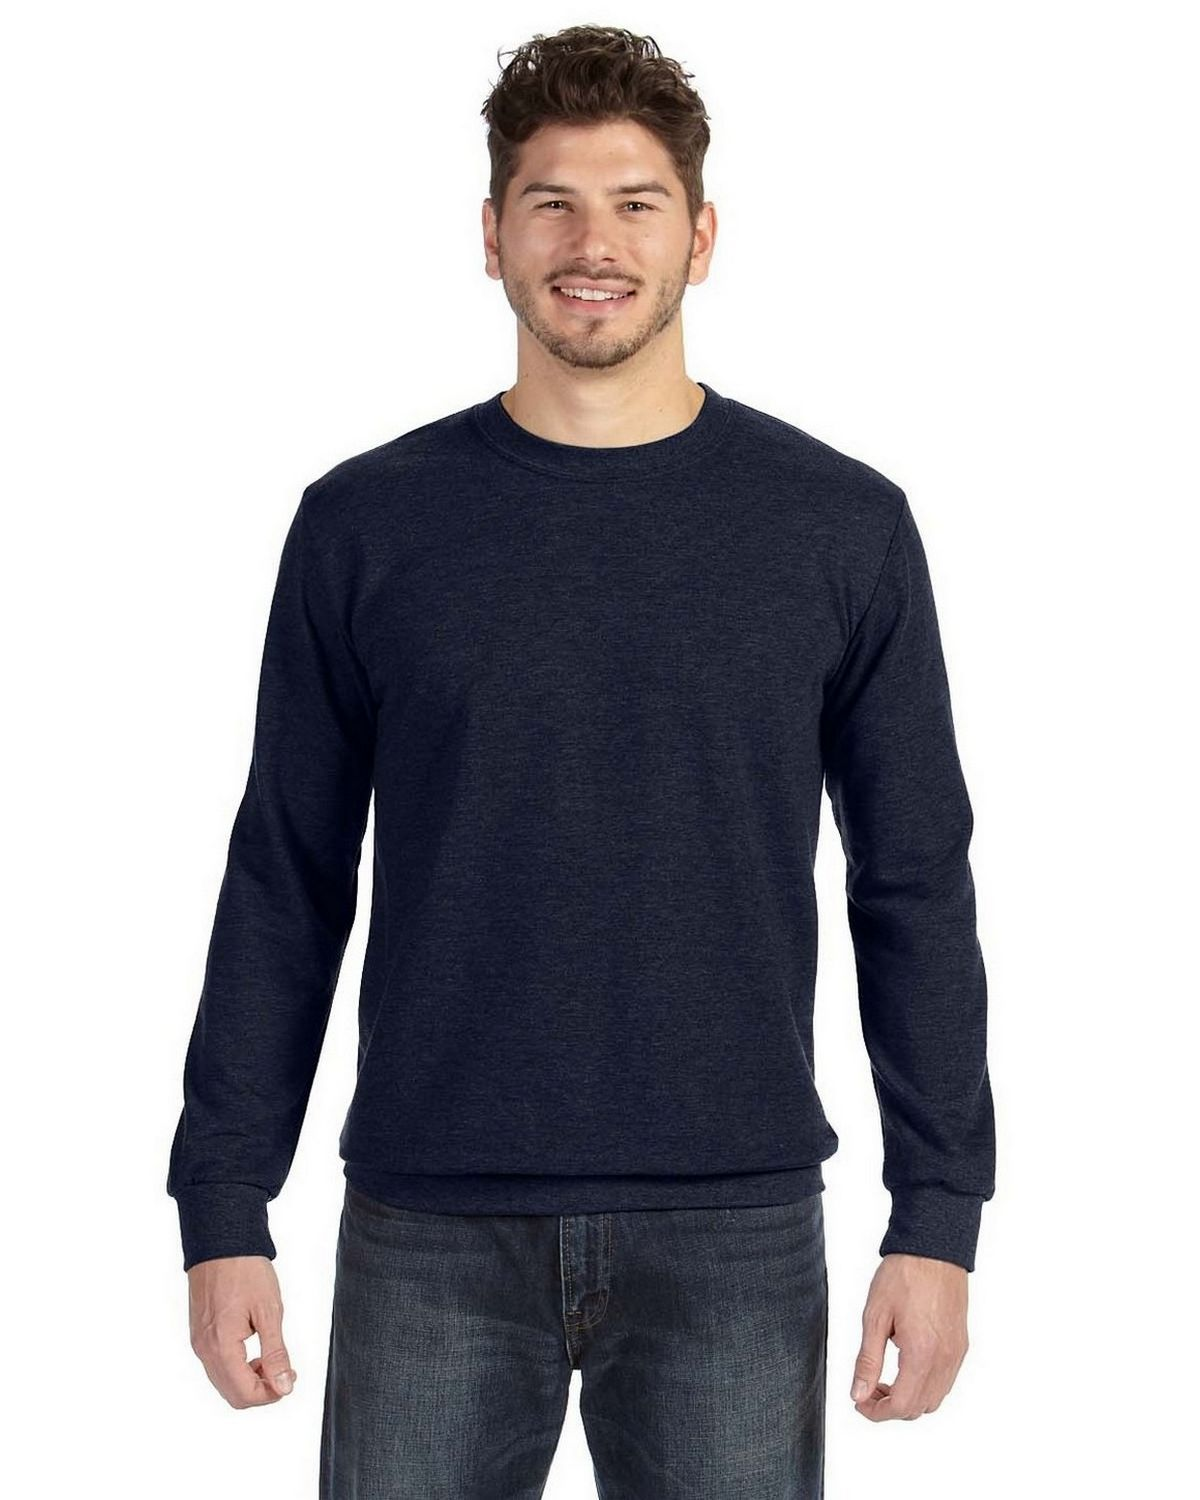 Anvil 72000 Ringspun French Terry Crewneck Sweatshirt - Navy - M 72000